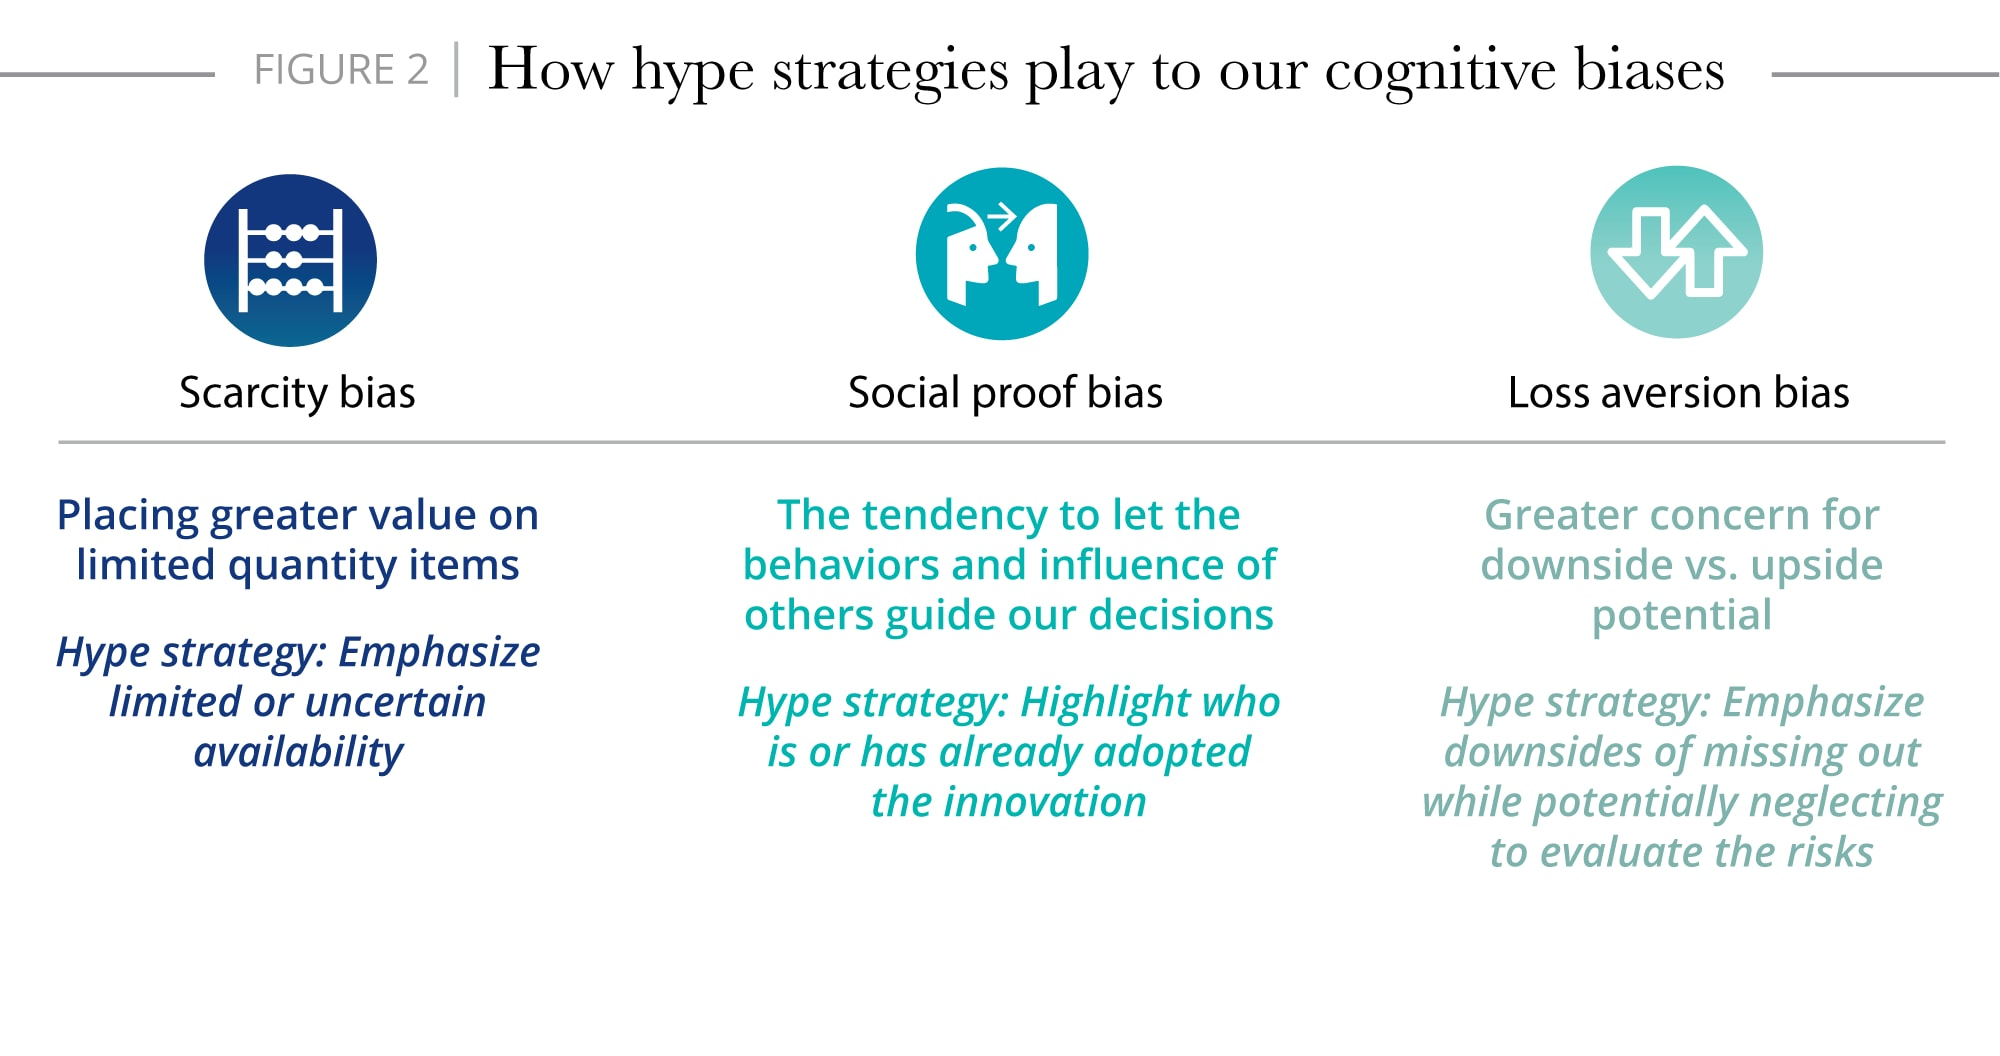 How hype strategies play to our cognitive biases